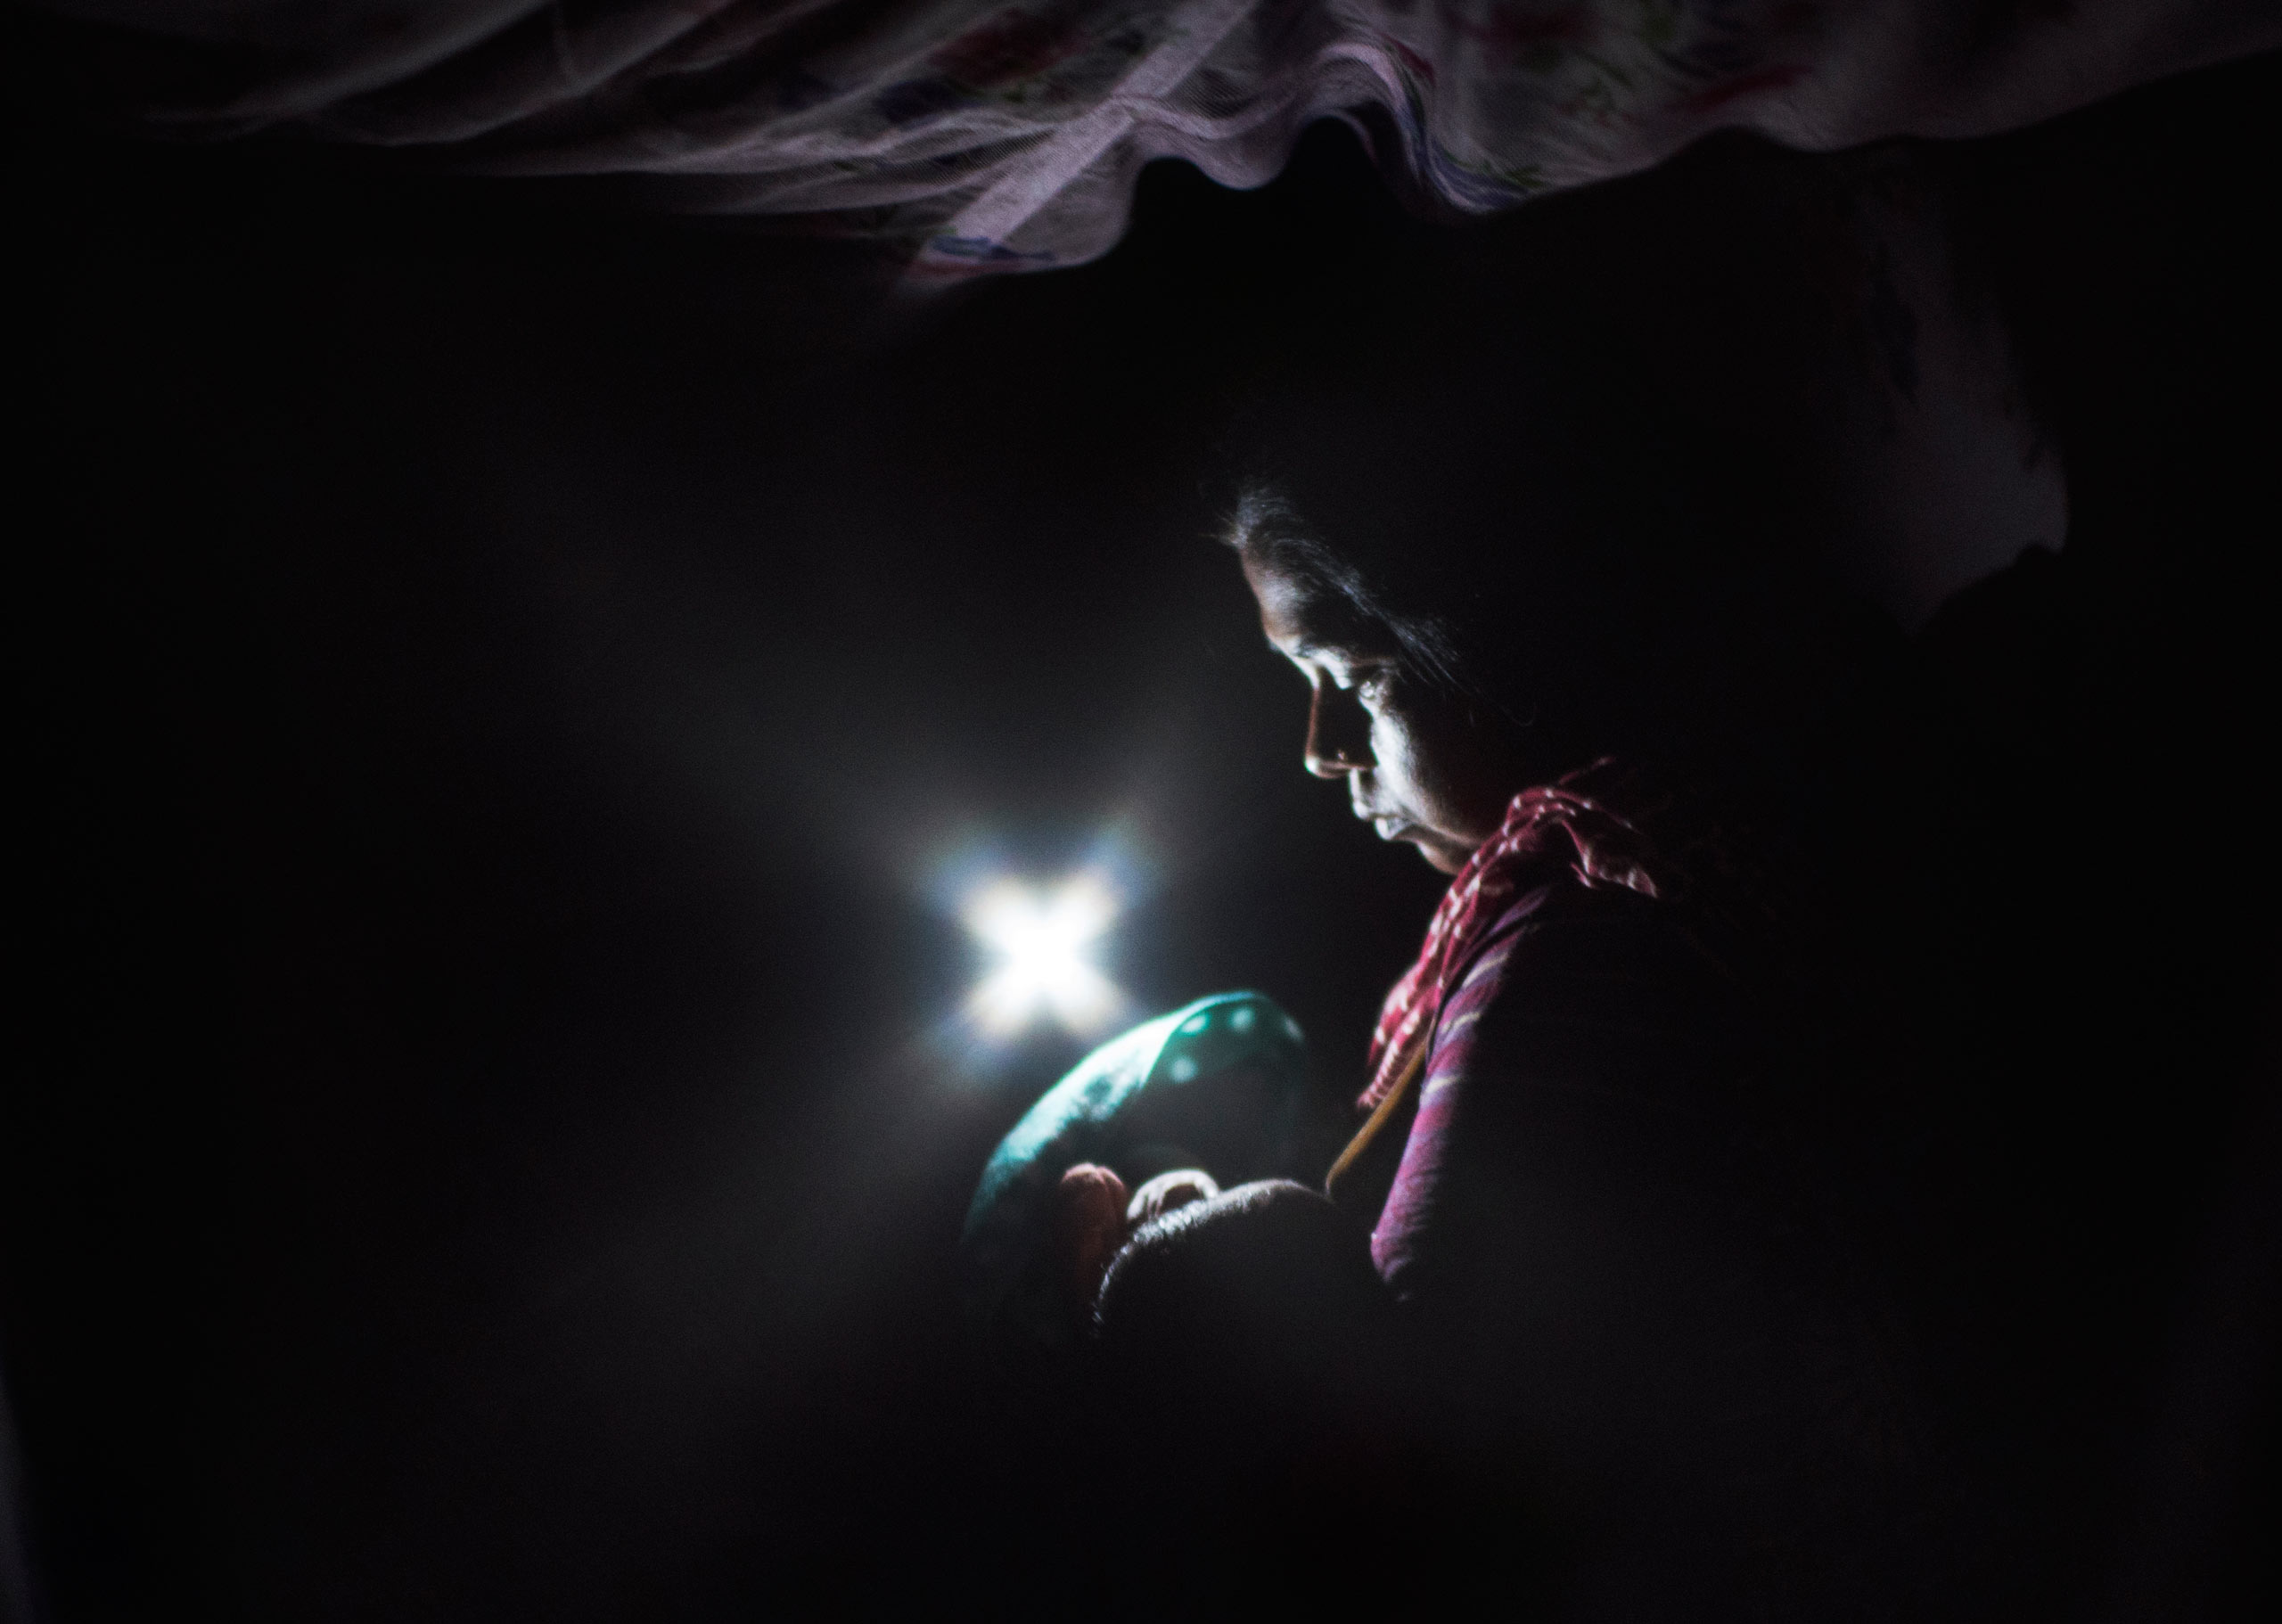 Nasuran Begham, 30, sits in the dark during an electricity cut holding her third child, four days after giving birth, in the a postnatal ward. Assam, India. April, 2015.